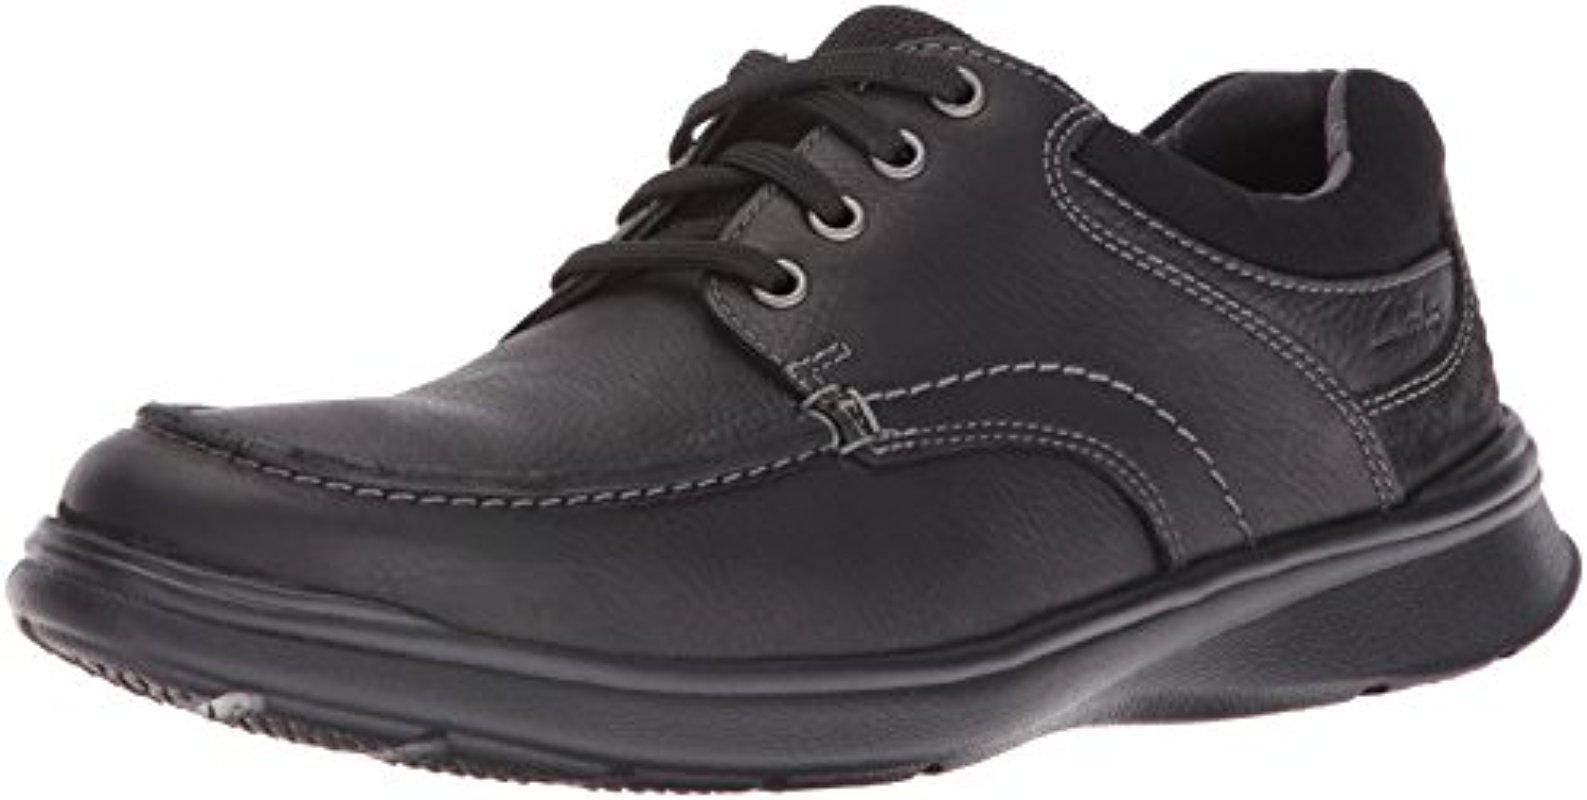 Clarks Cotrell Edge Leather Sneaker - Wide Width Available HaDmvBz9d